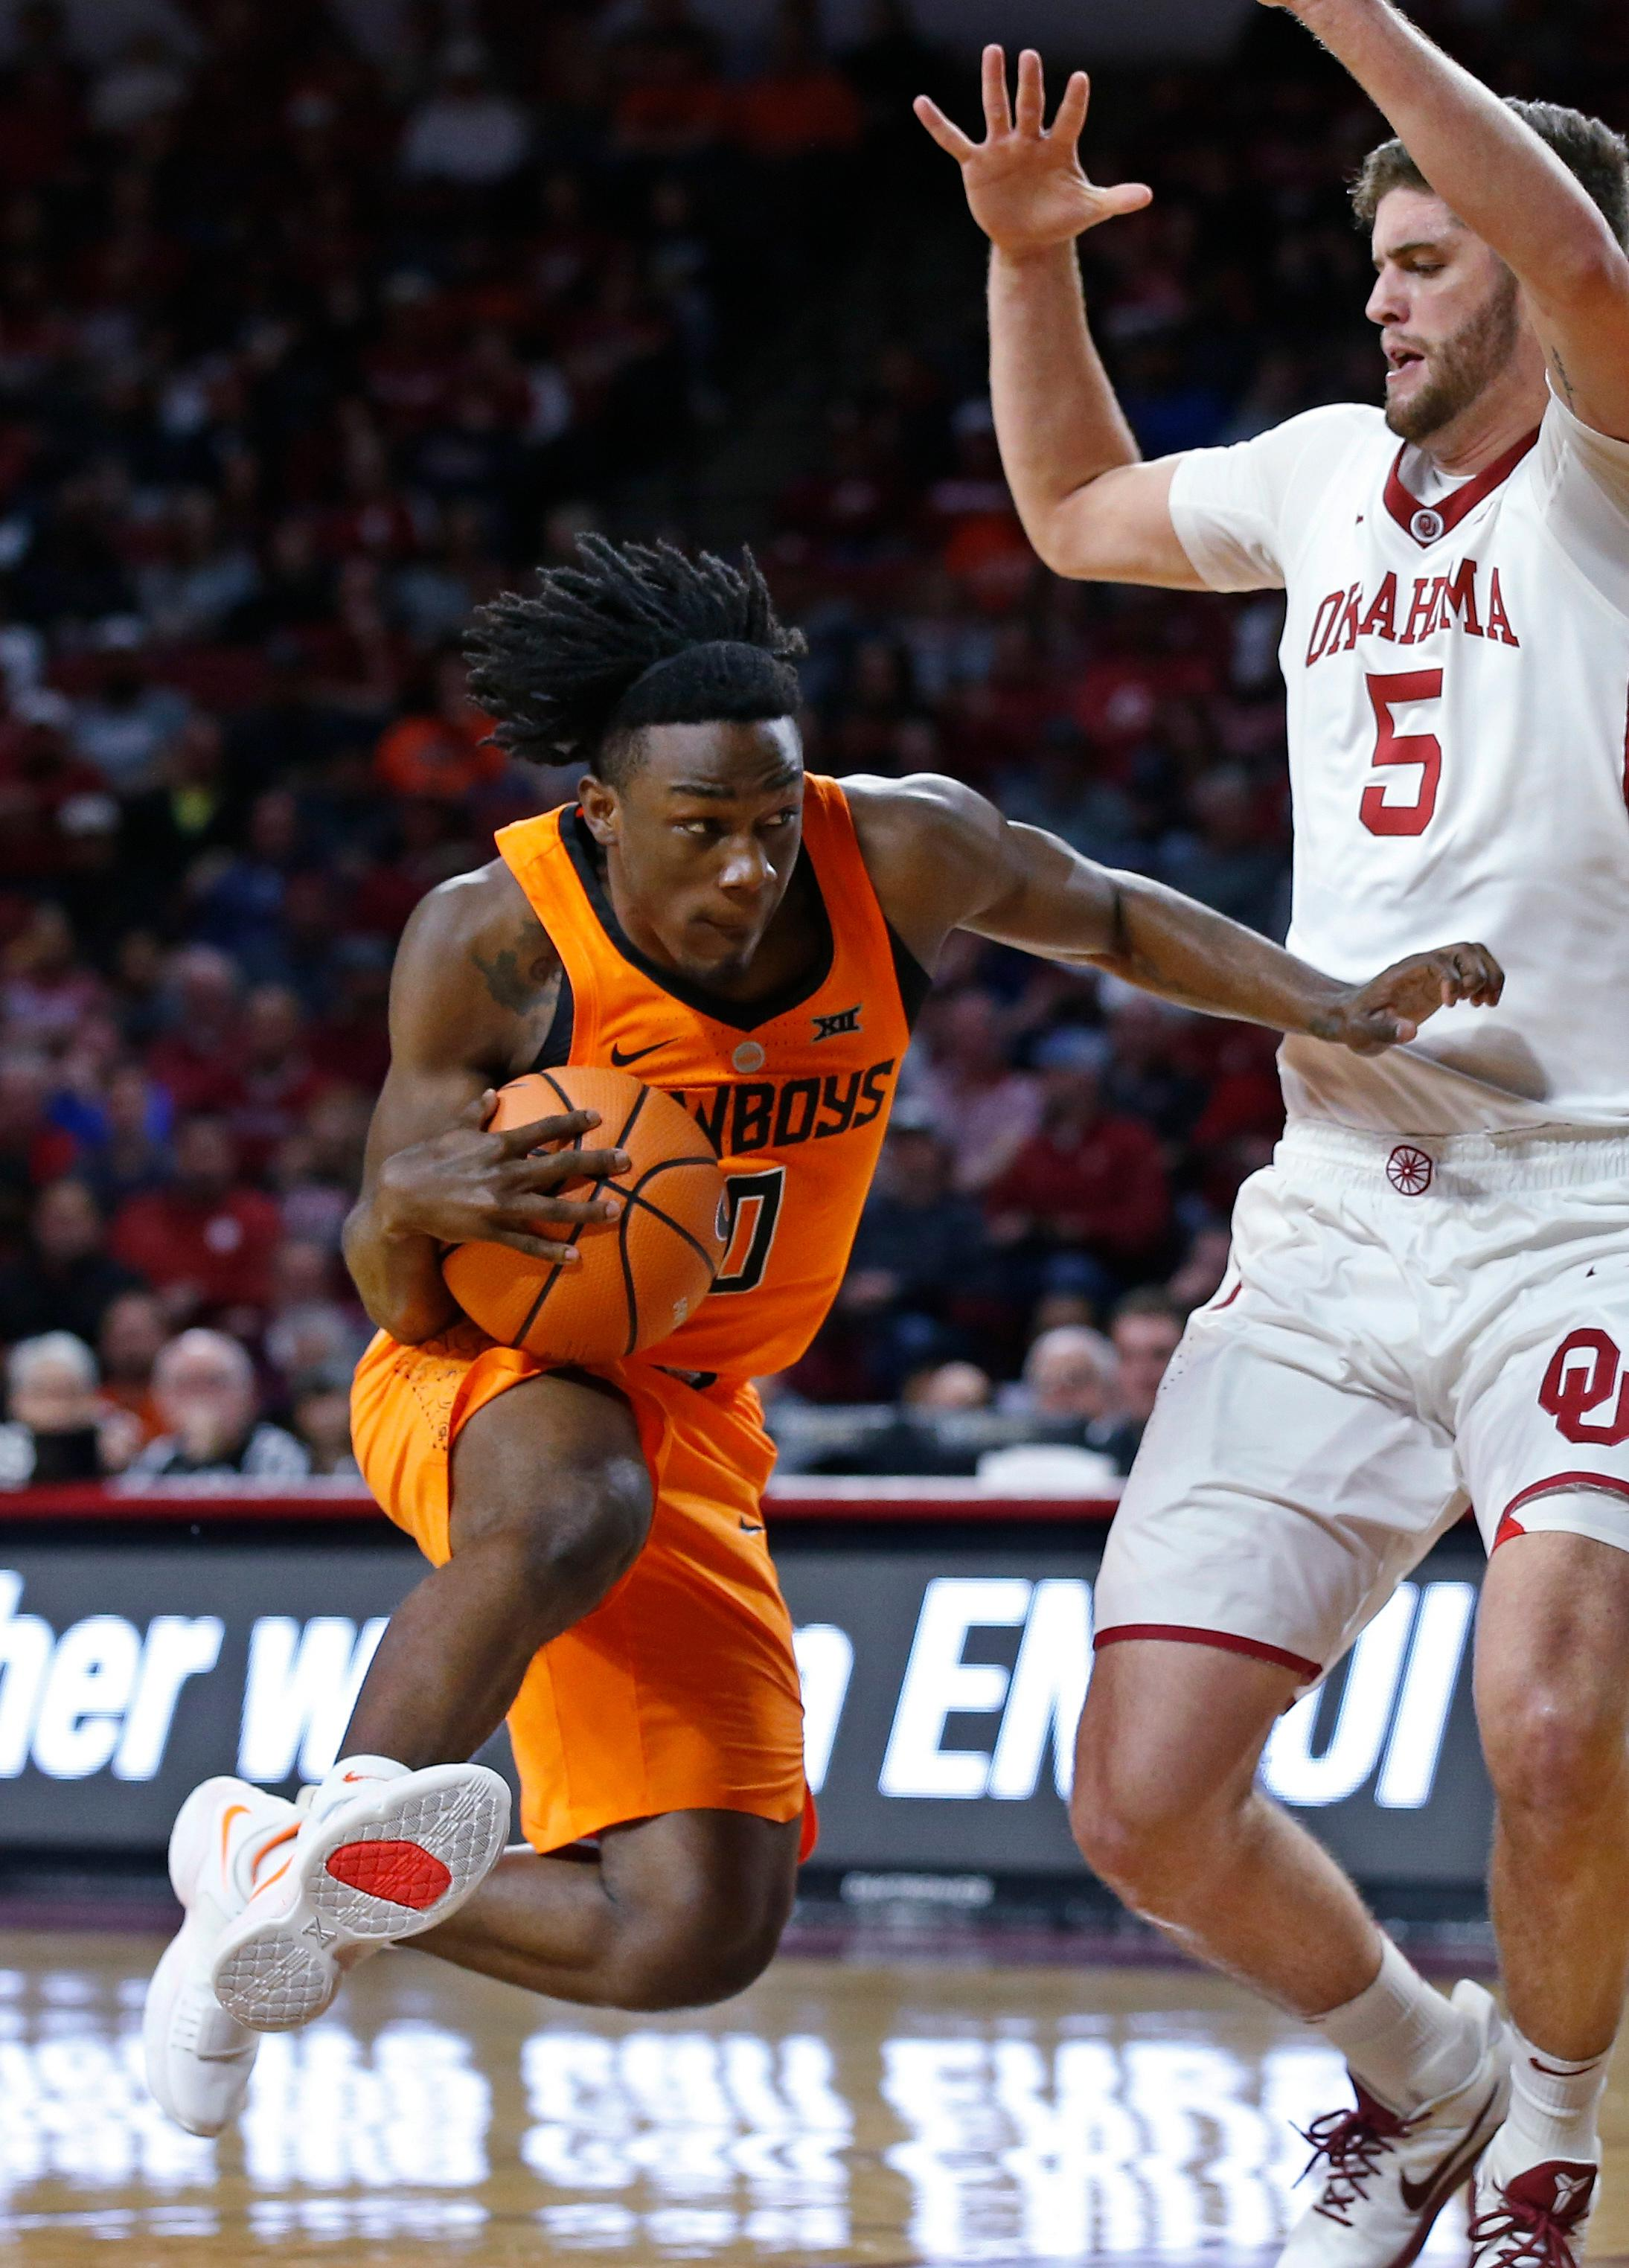 Oklahoma State guard Brandon Averette (0) drives around Oklahoma forward Matt Freeman (5) during the first half of an NCAA college basketball game in Norman, Okla., Wednesday, Jan. 3, 2018. (AP Photo/Sue Ogrocki)